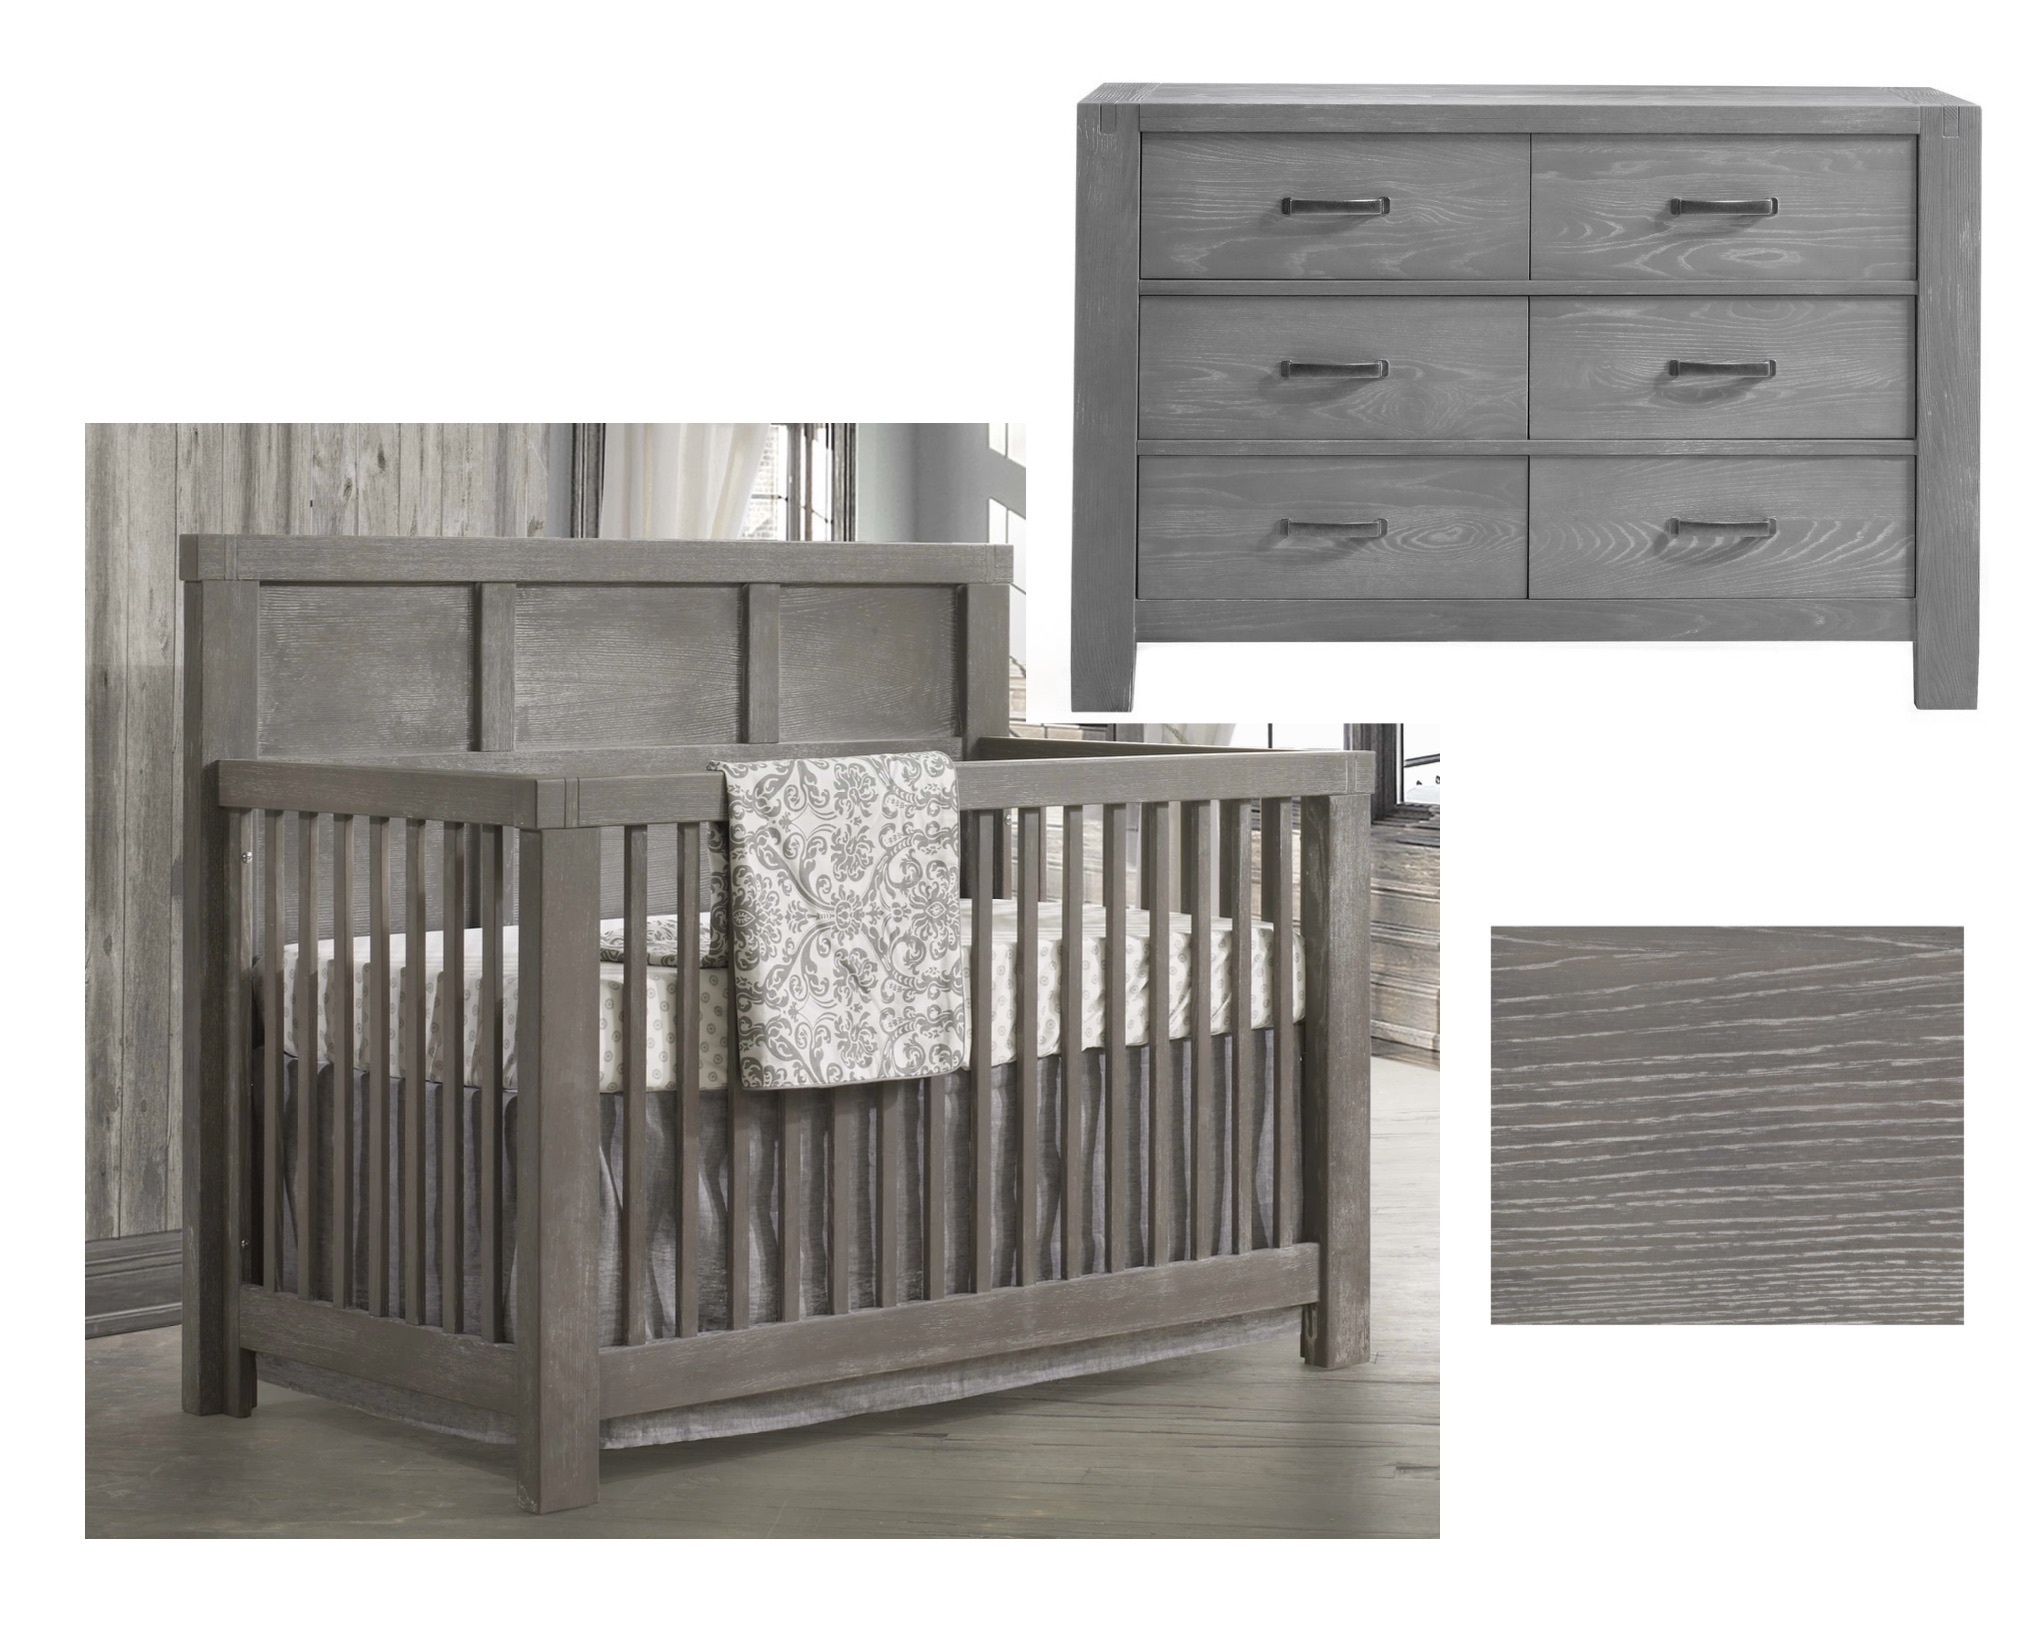 Natart Rustico Convertible Crib and Double Dresser - Owl